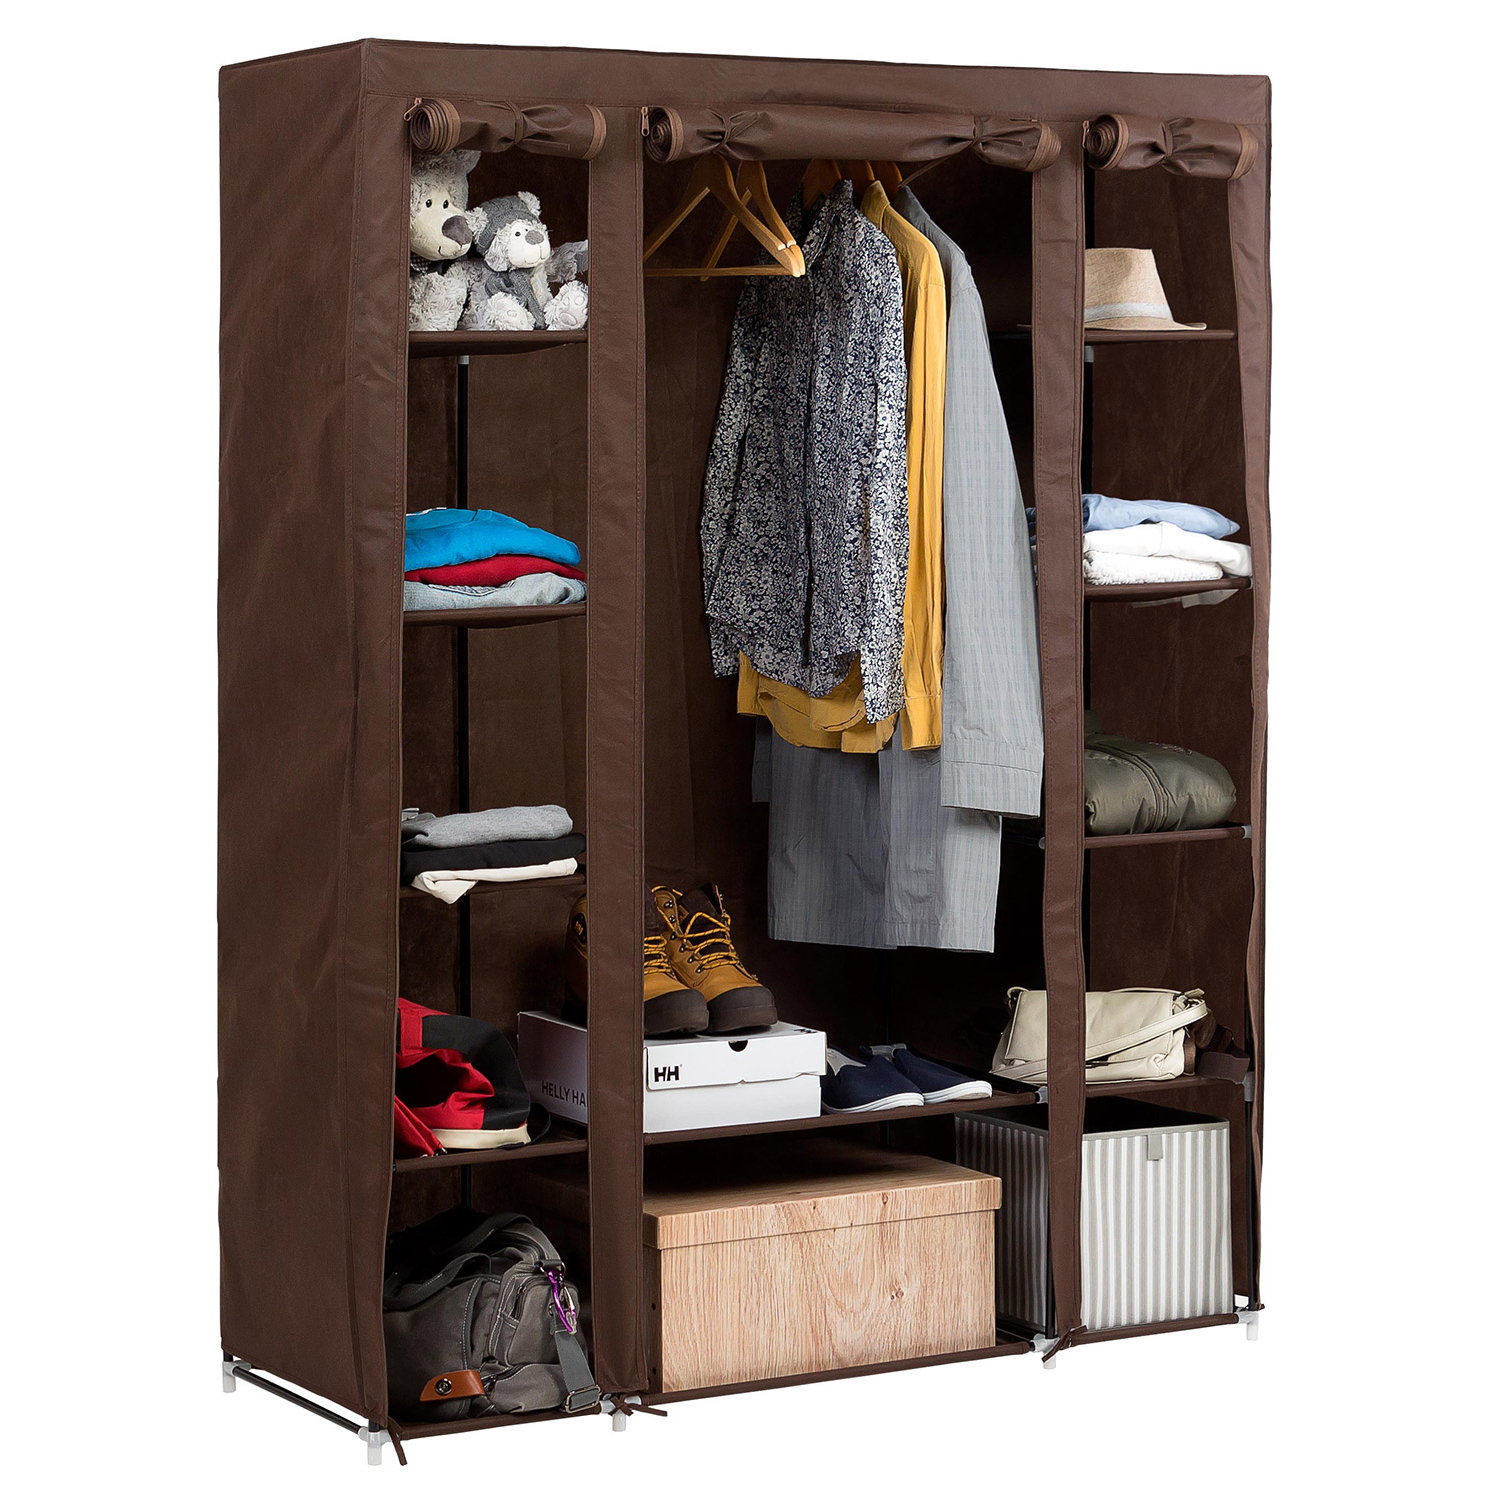 Art Moon Montana Foldable Wardrobe Bedroom Furniture Hanging Clothes Rail 12 Shelves And Shoe Shelf L135xh175xd45 Cm Tatkraft